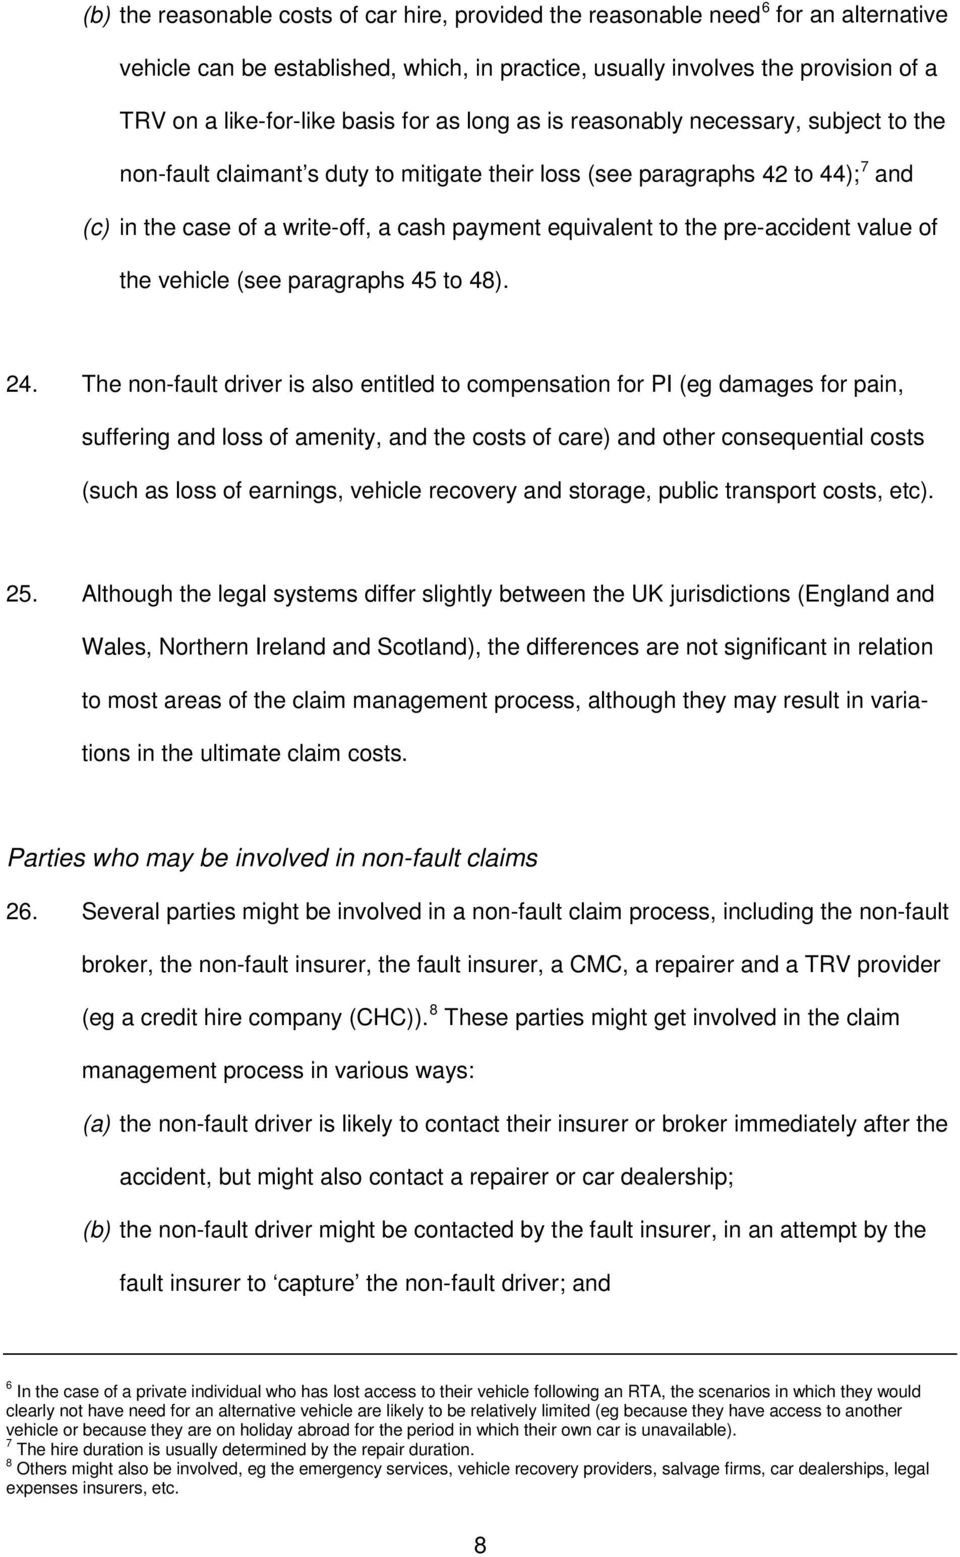 equivalent to the pre-accident value of the vehicle (see paragraphs 45 to 48). 24.